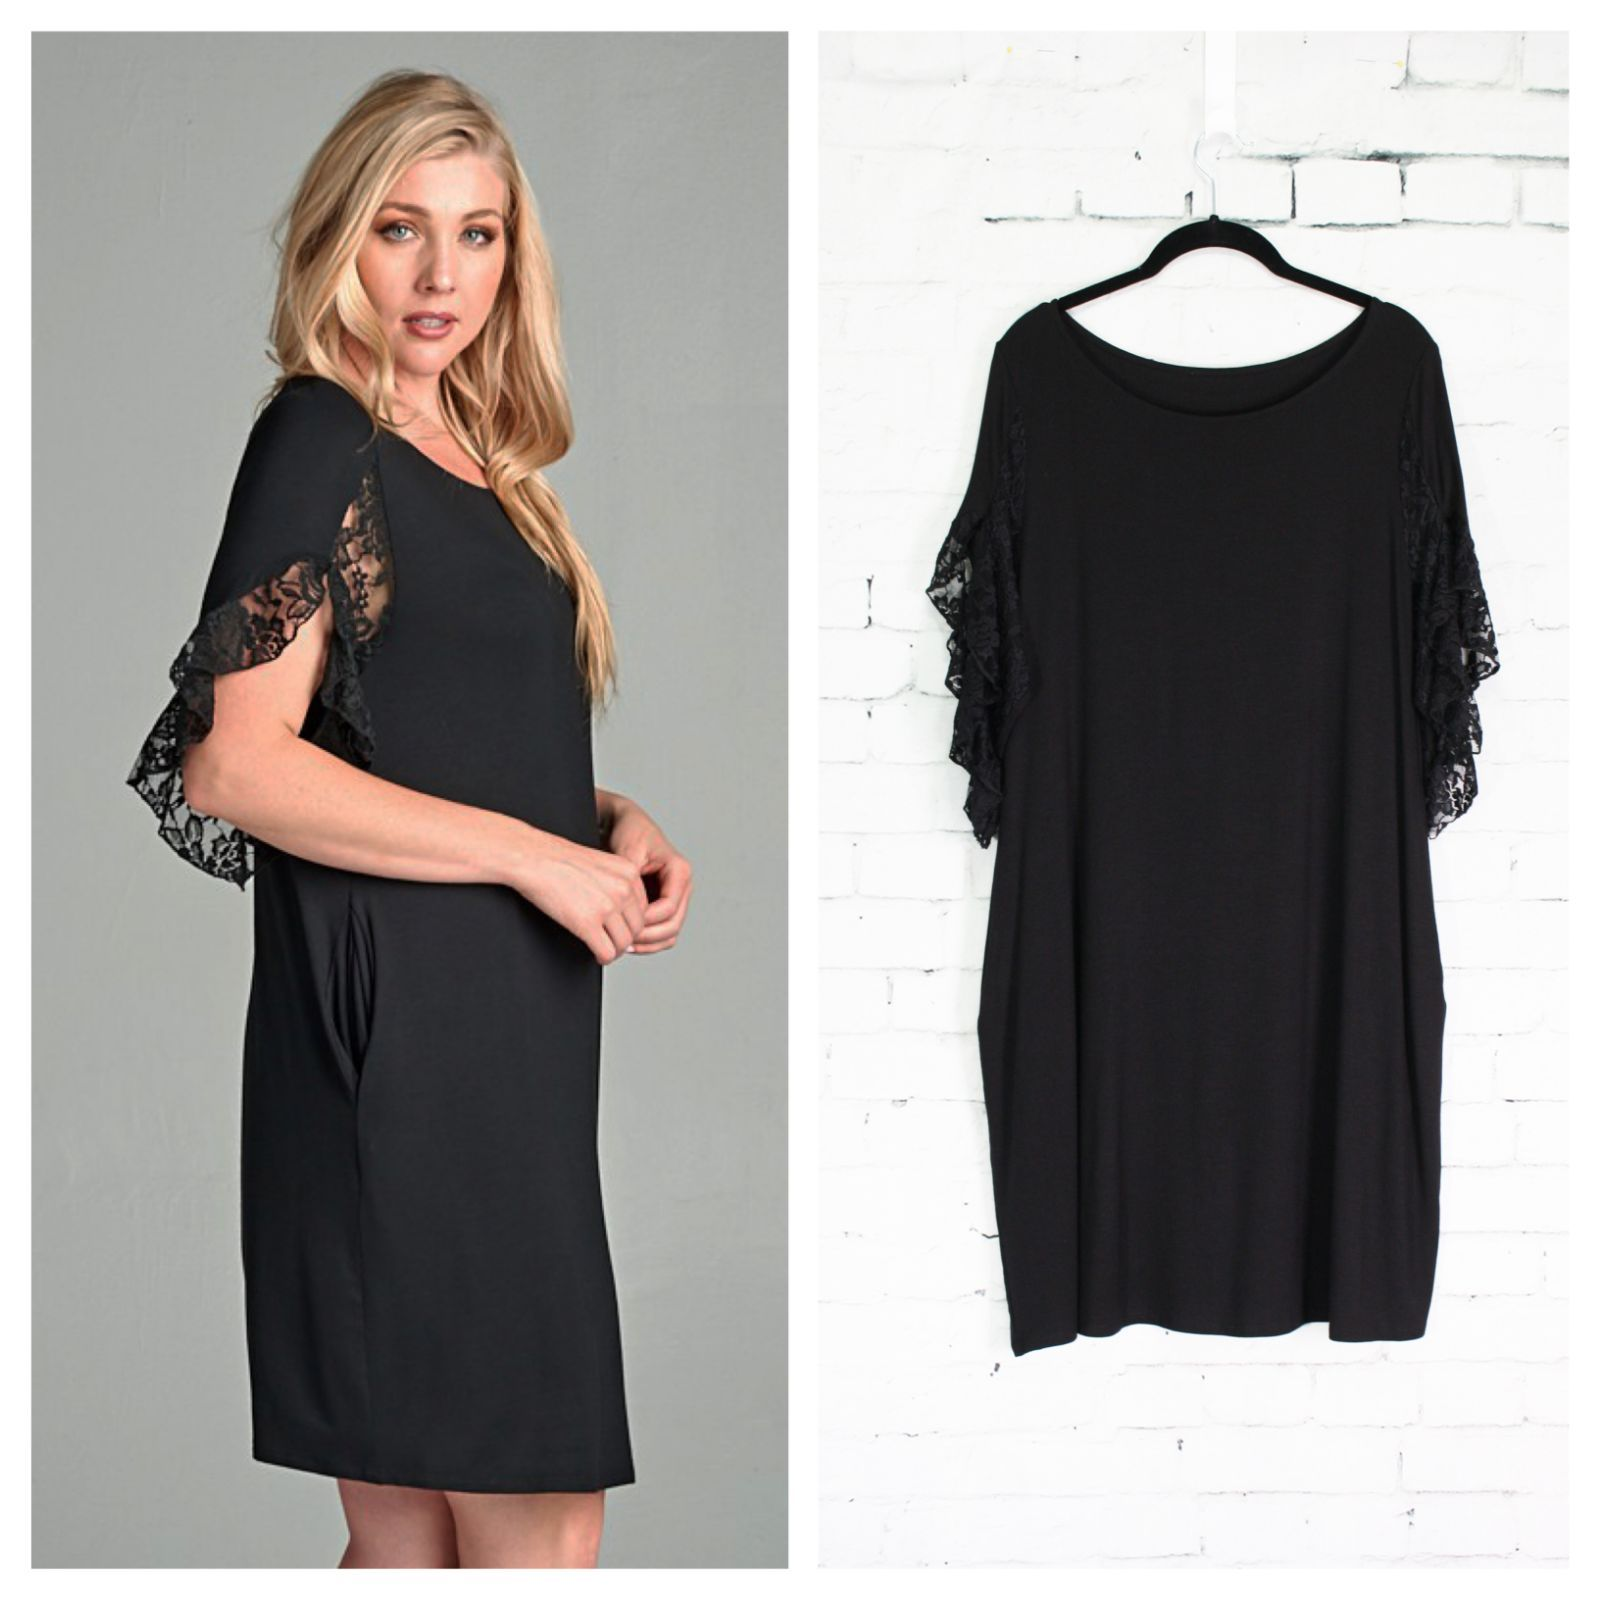 Black dress has sleeves in a mid-arm length trimmed in a light feminine lace, and pockets st sides.